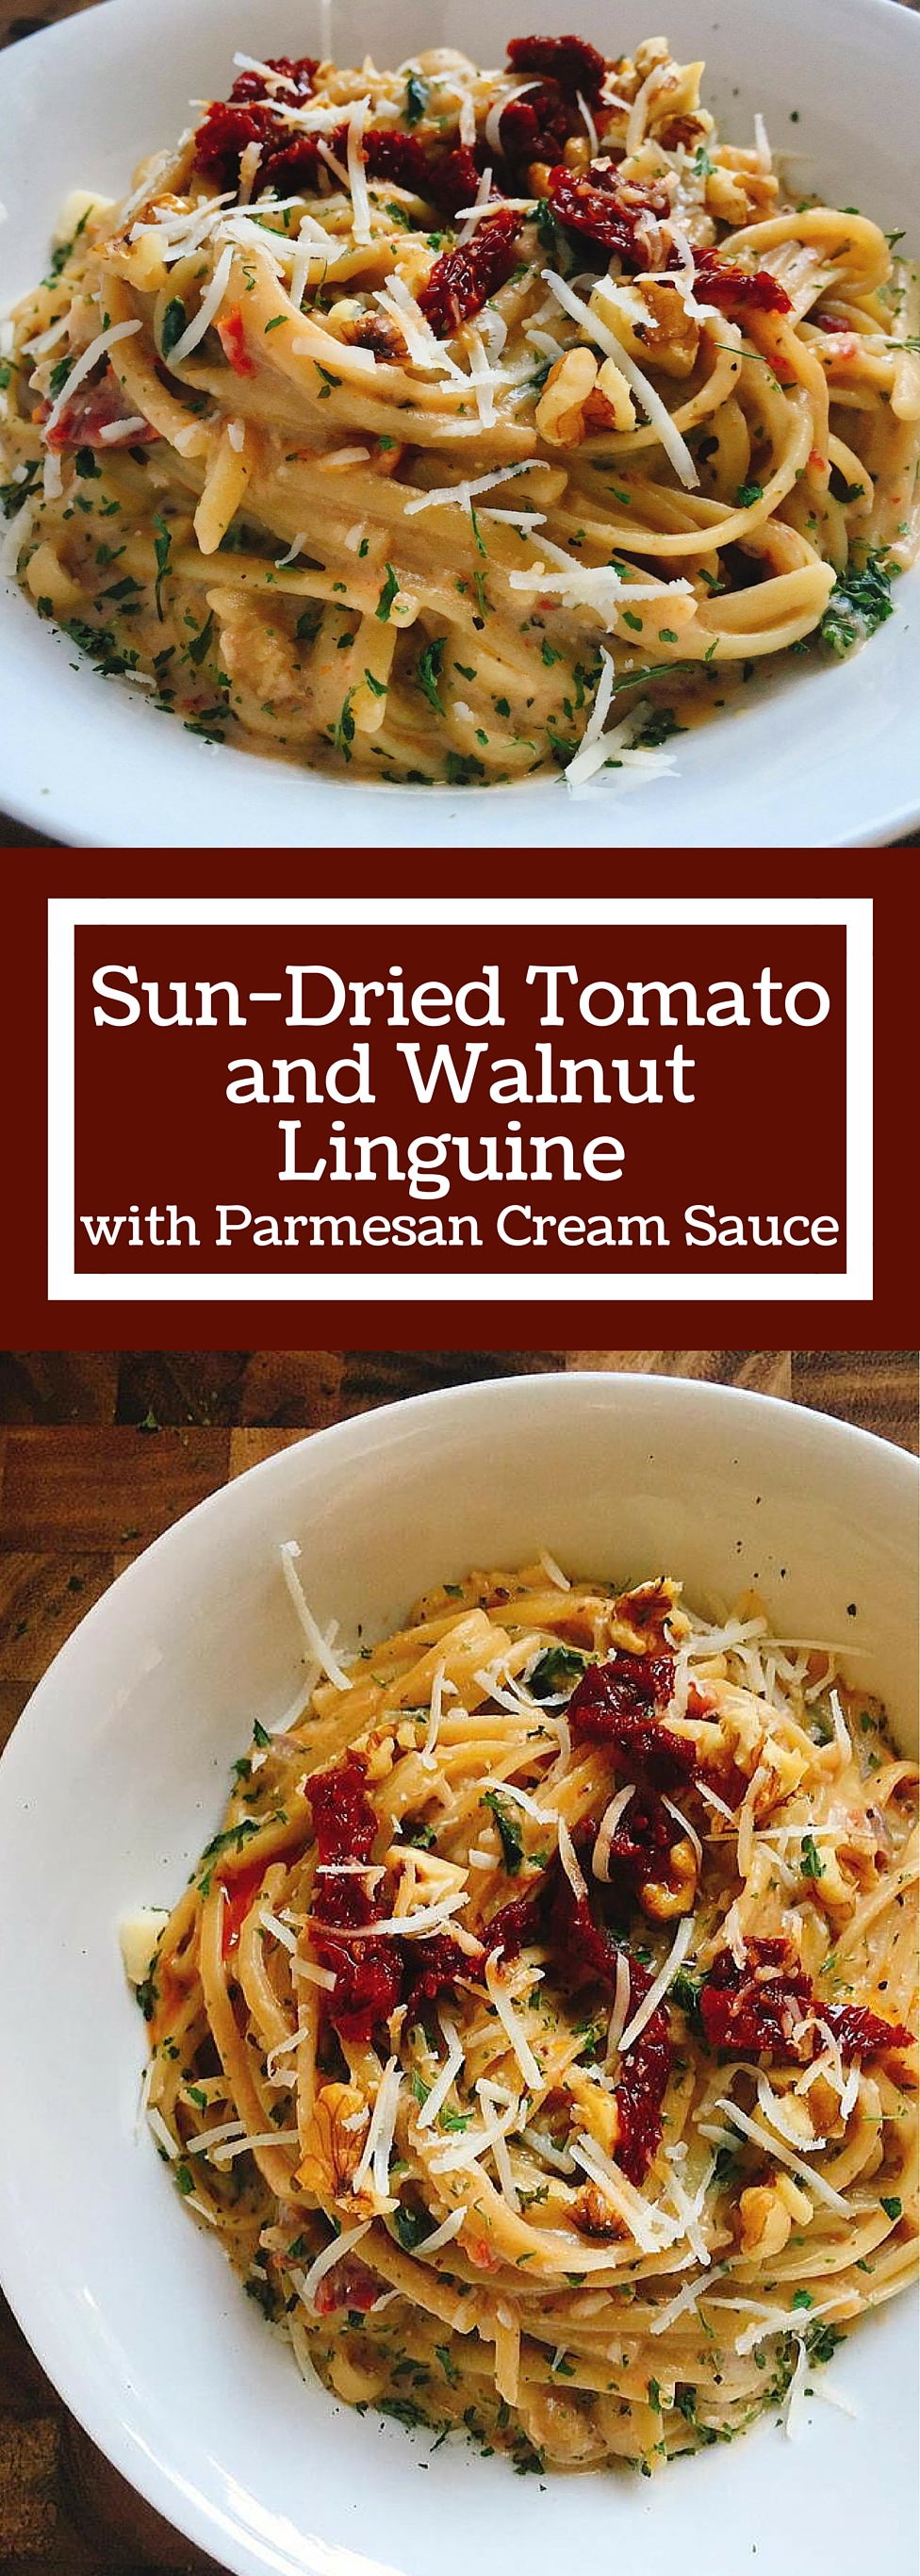 Sun-Dried Tomato and Walnut Linguine with Parmesan Cream Sauce | Three ...